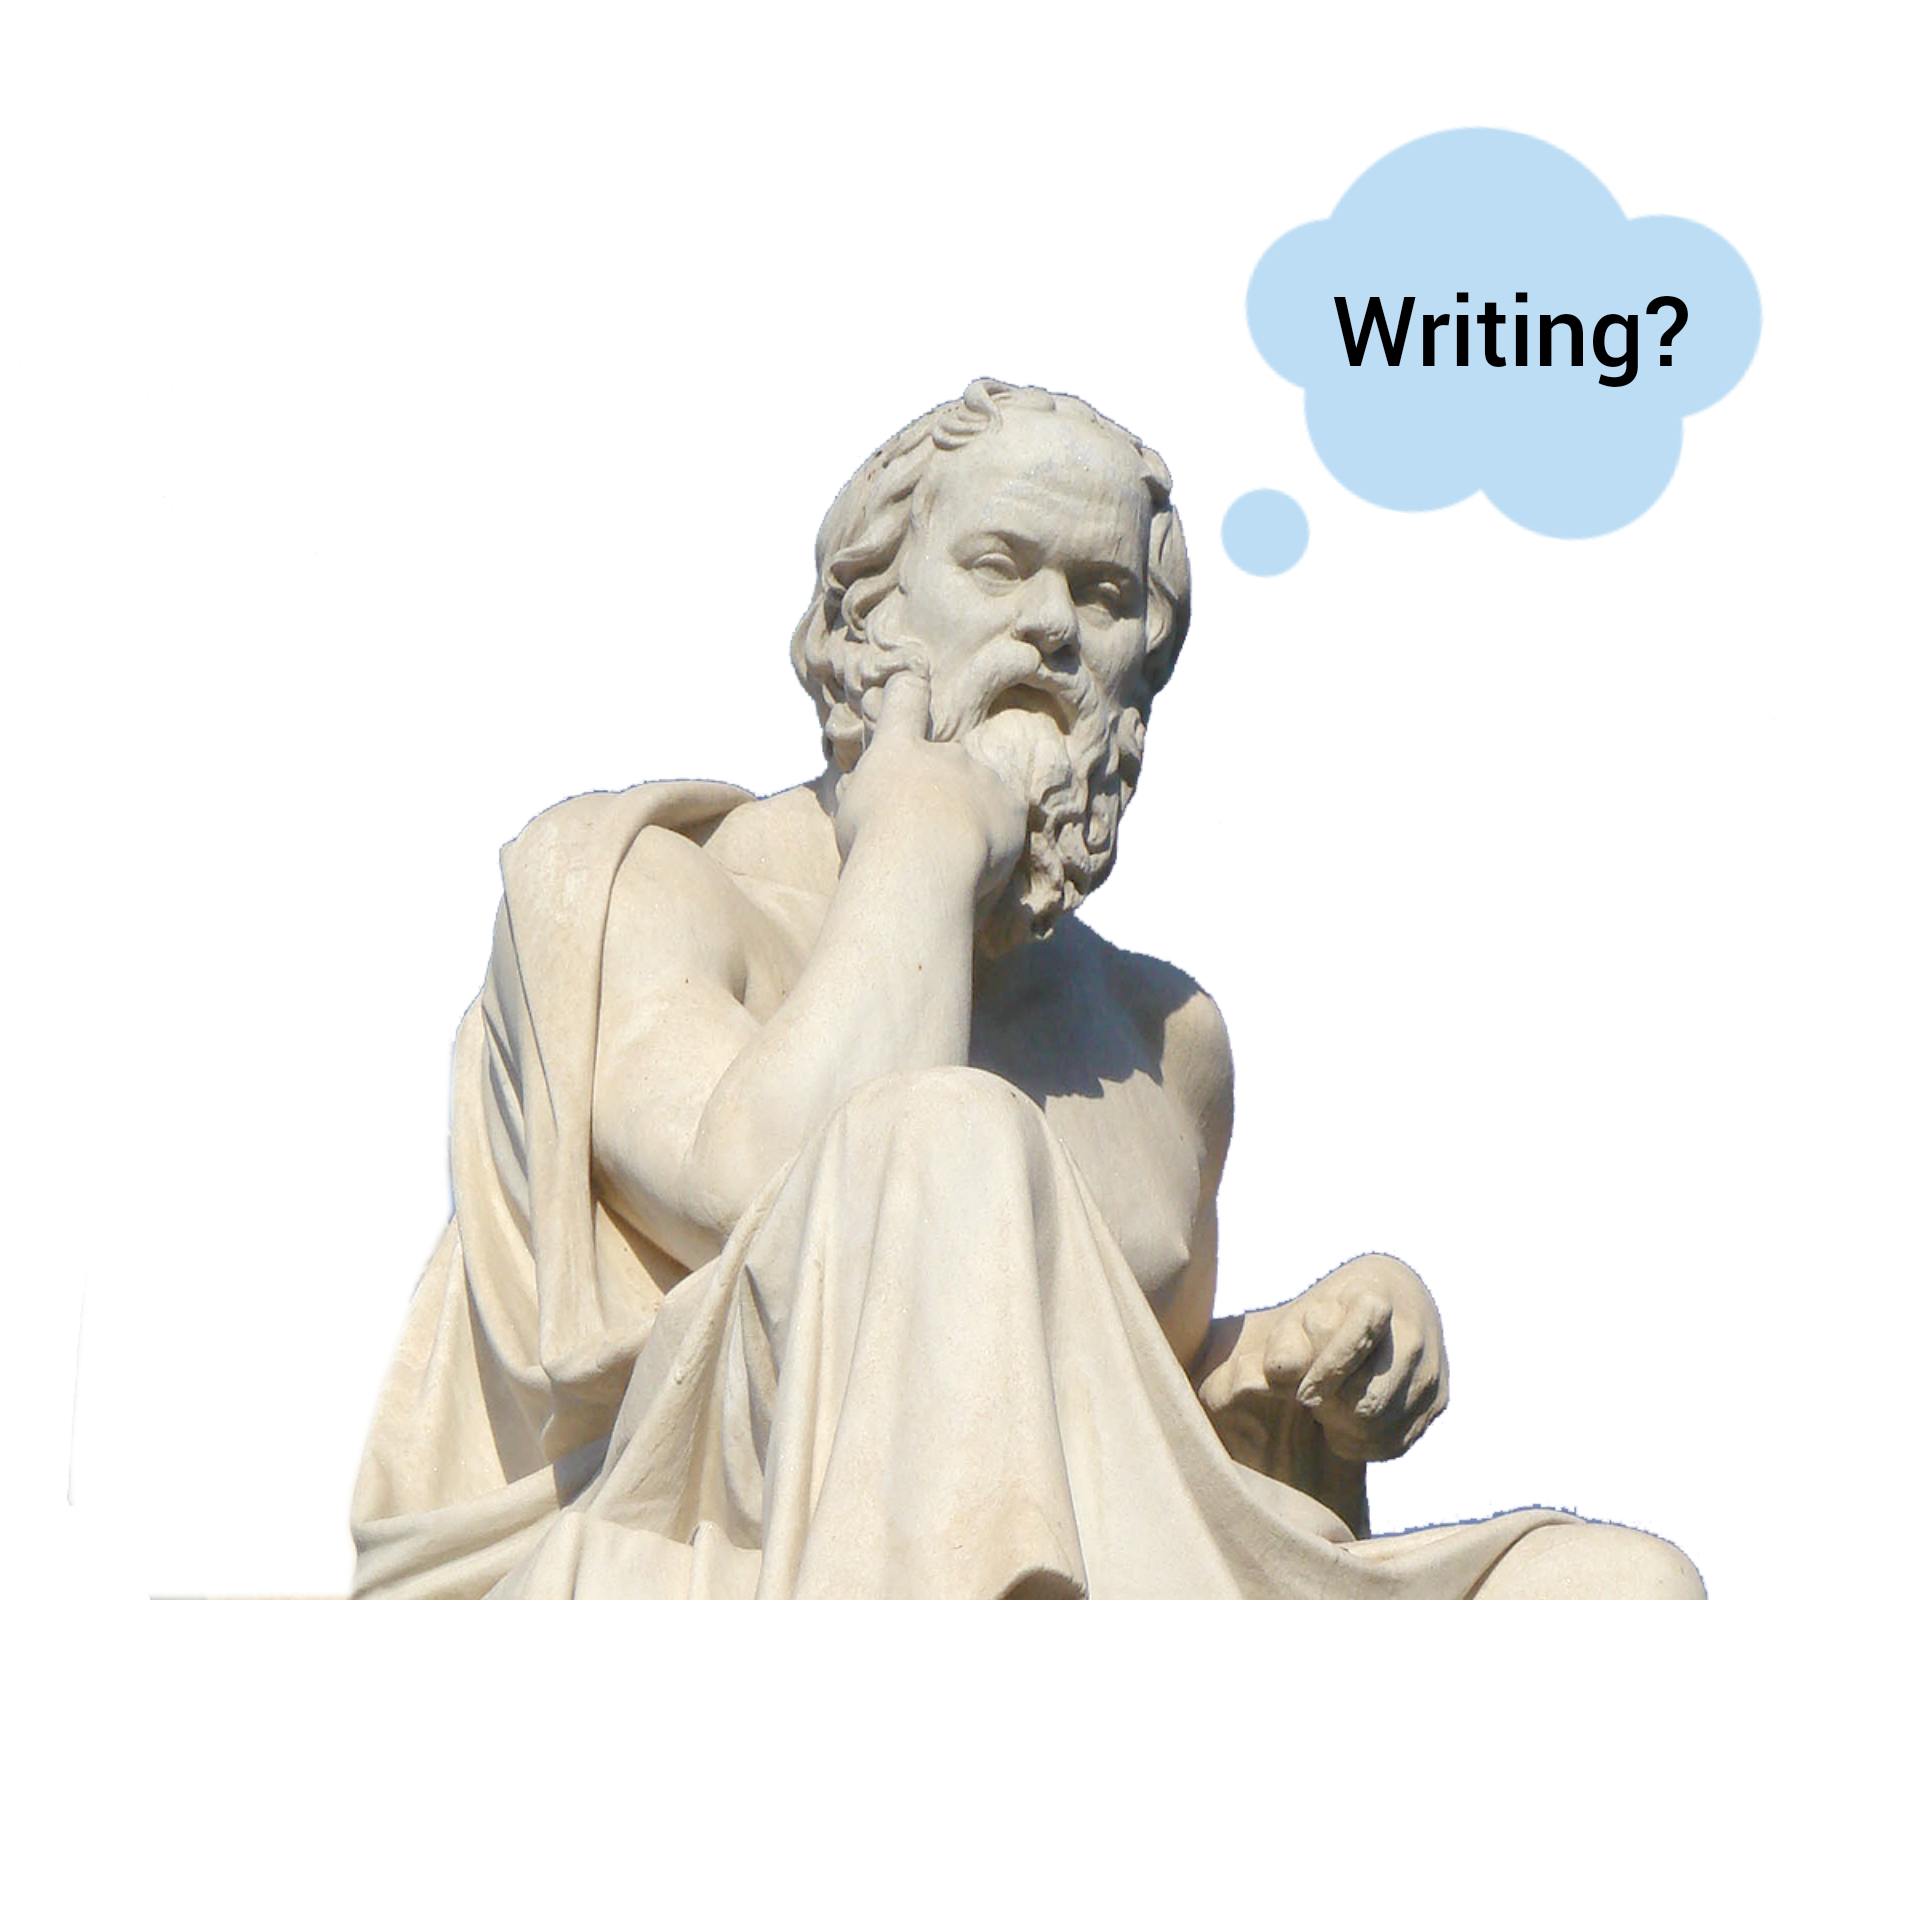 What do you know, Socrates?